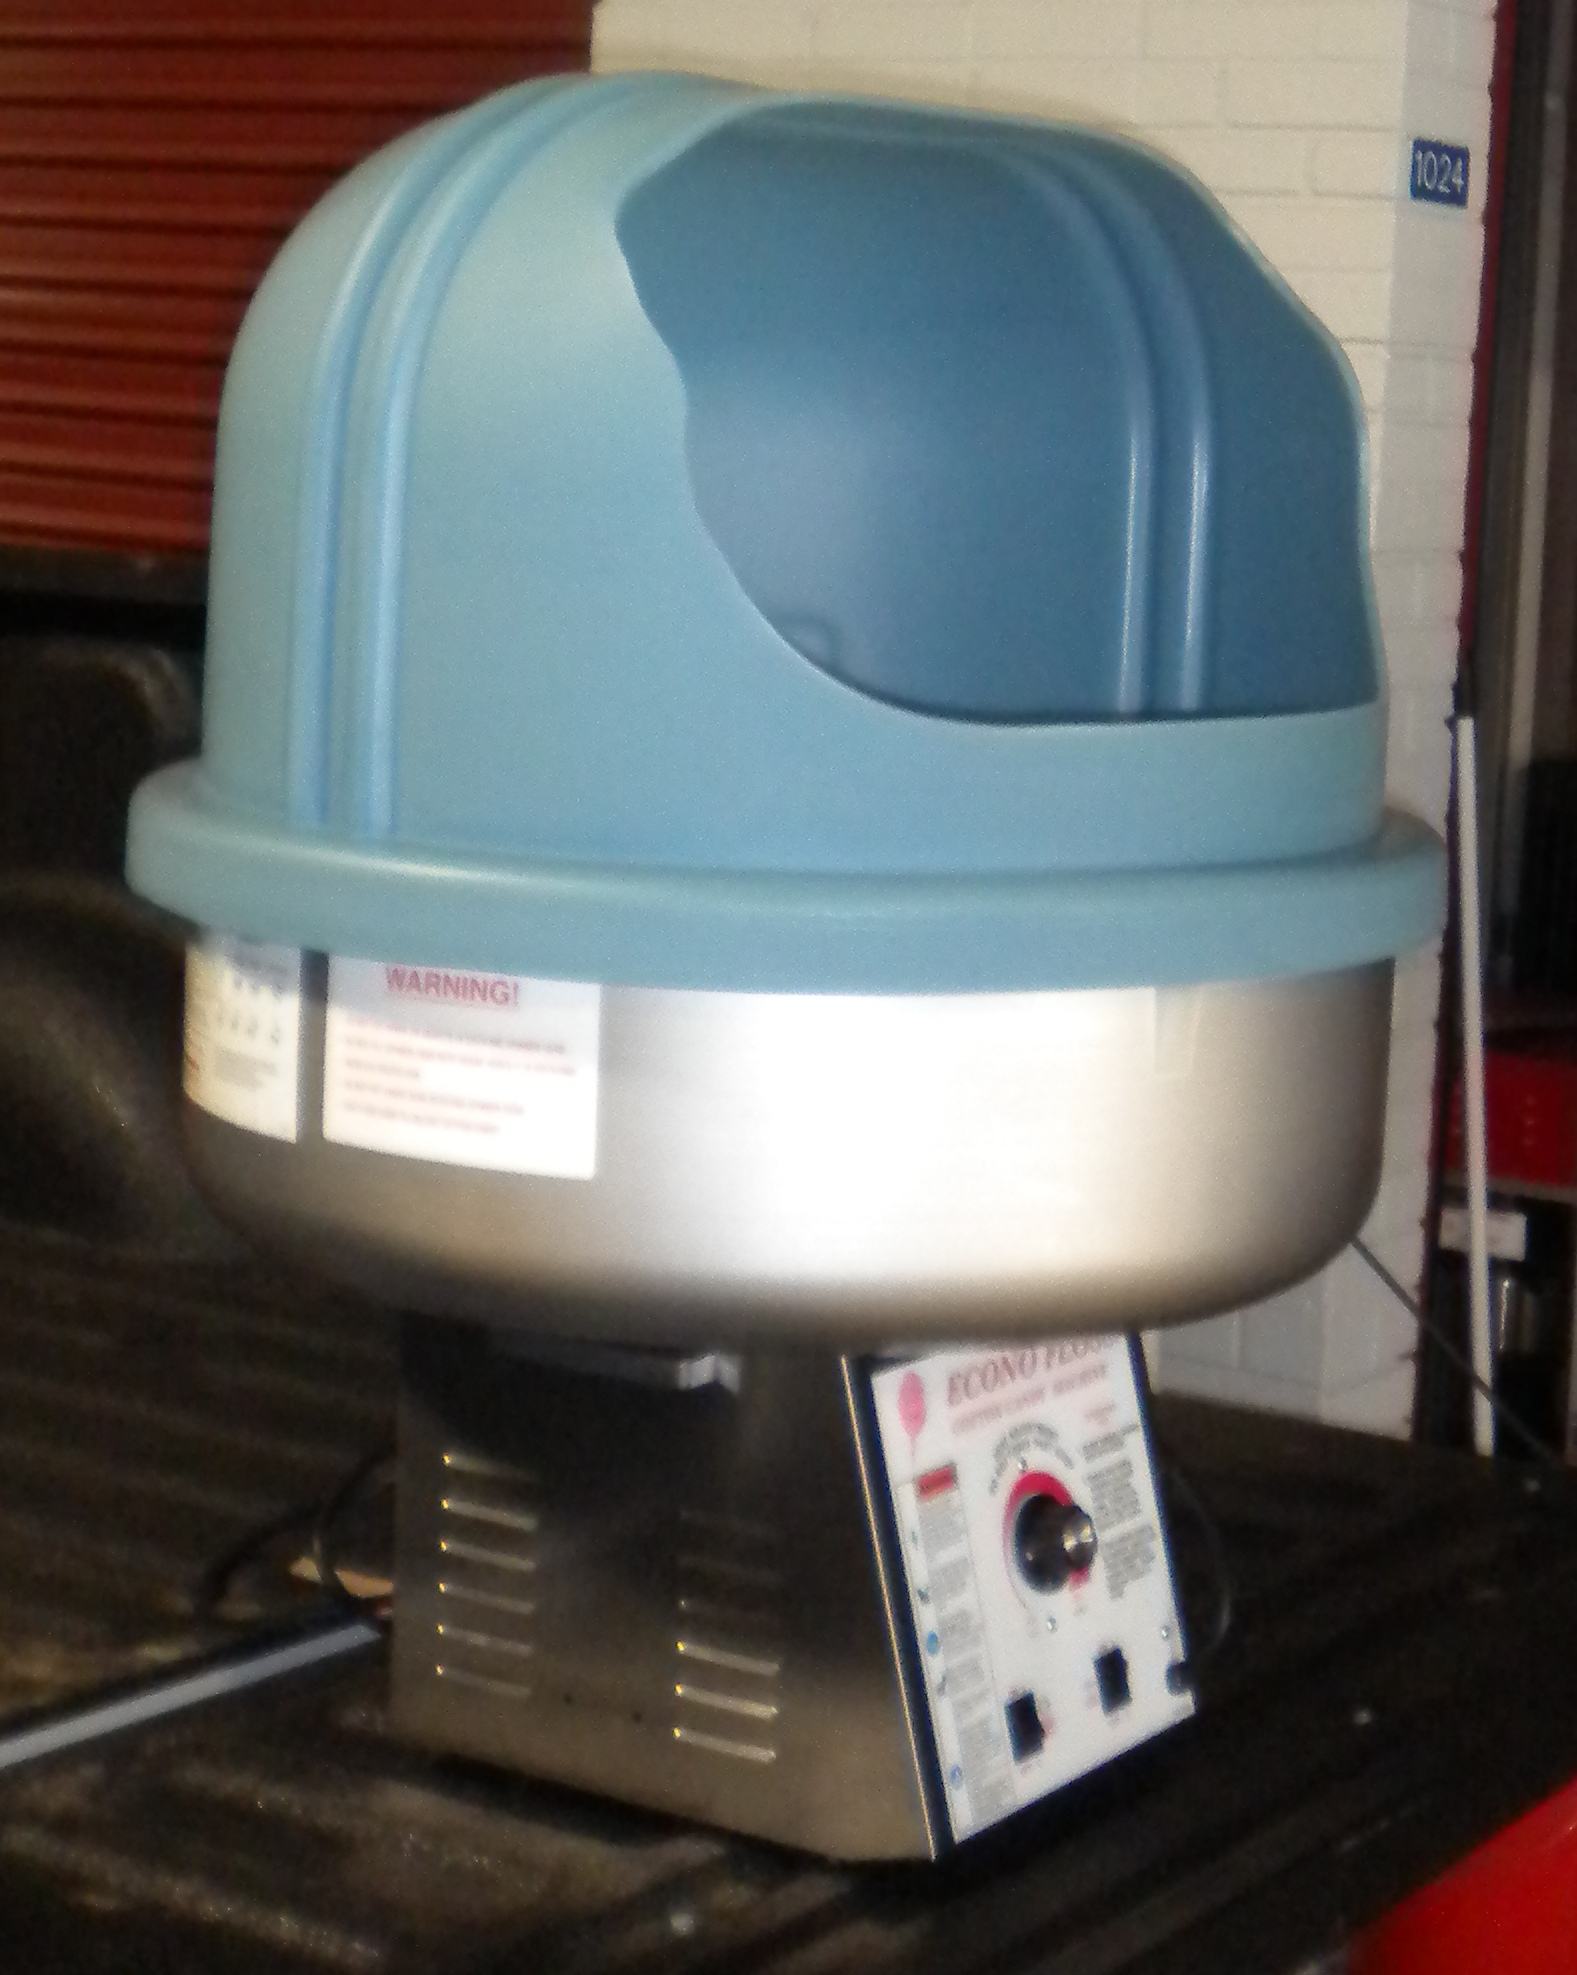 Blue Cotton Candy Machine Left View